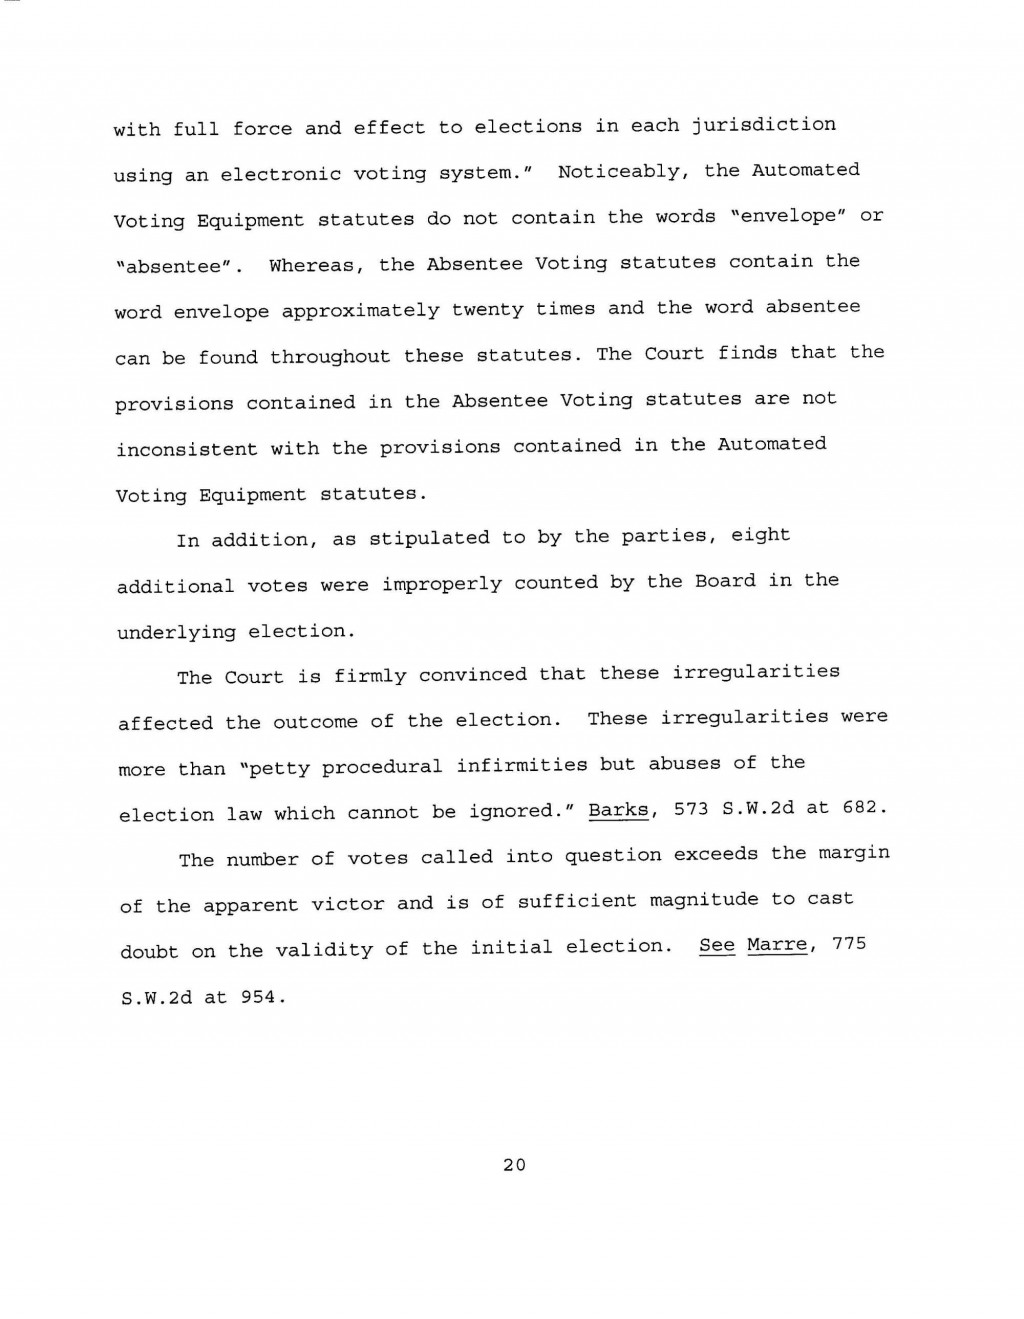 018 Memorandumorderandfinaljudgment Final Page 20quality85stripallw2000 Essay Example Why Is It Important To Vote Top Contest Large